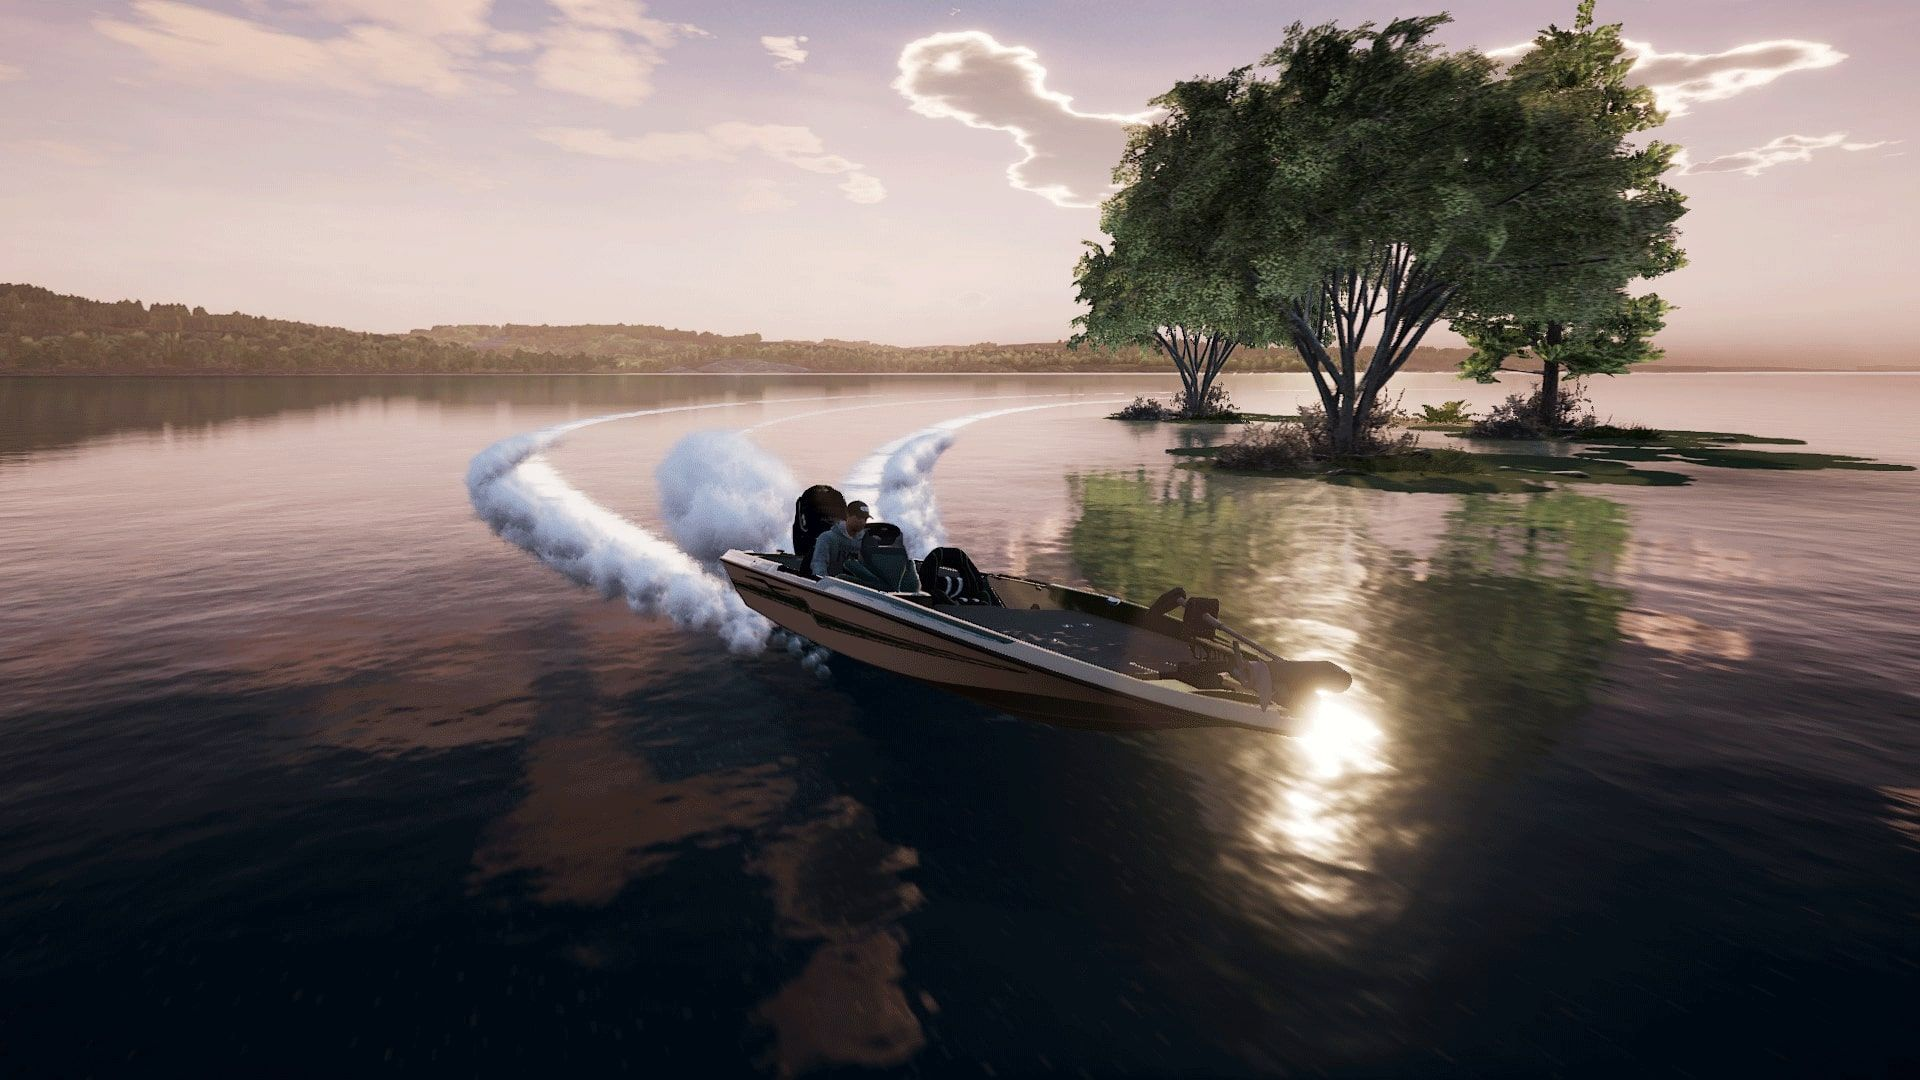 FISHINGSIMWORLDPTARNOLD2.jpg